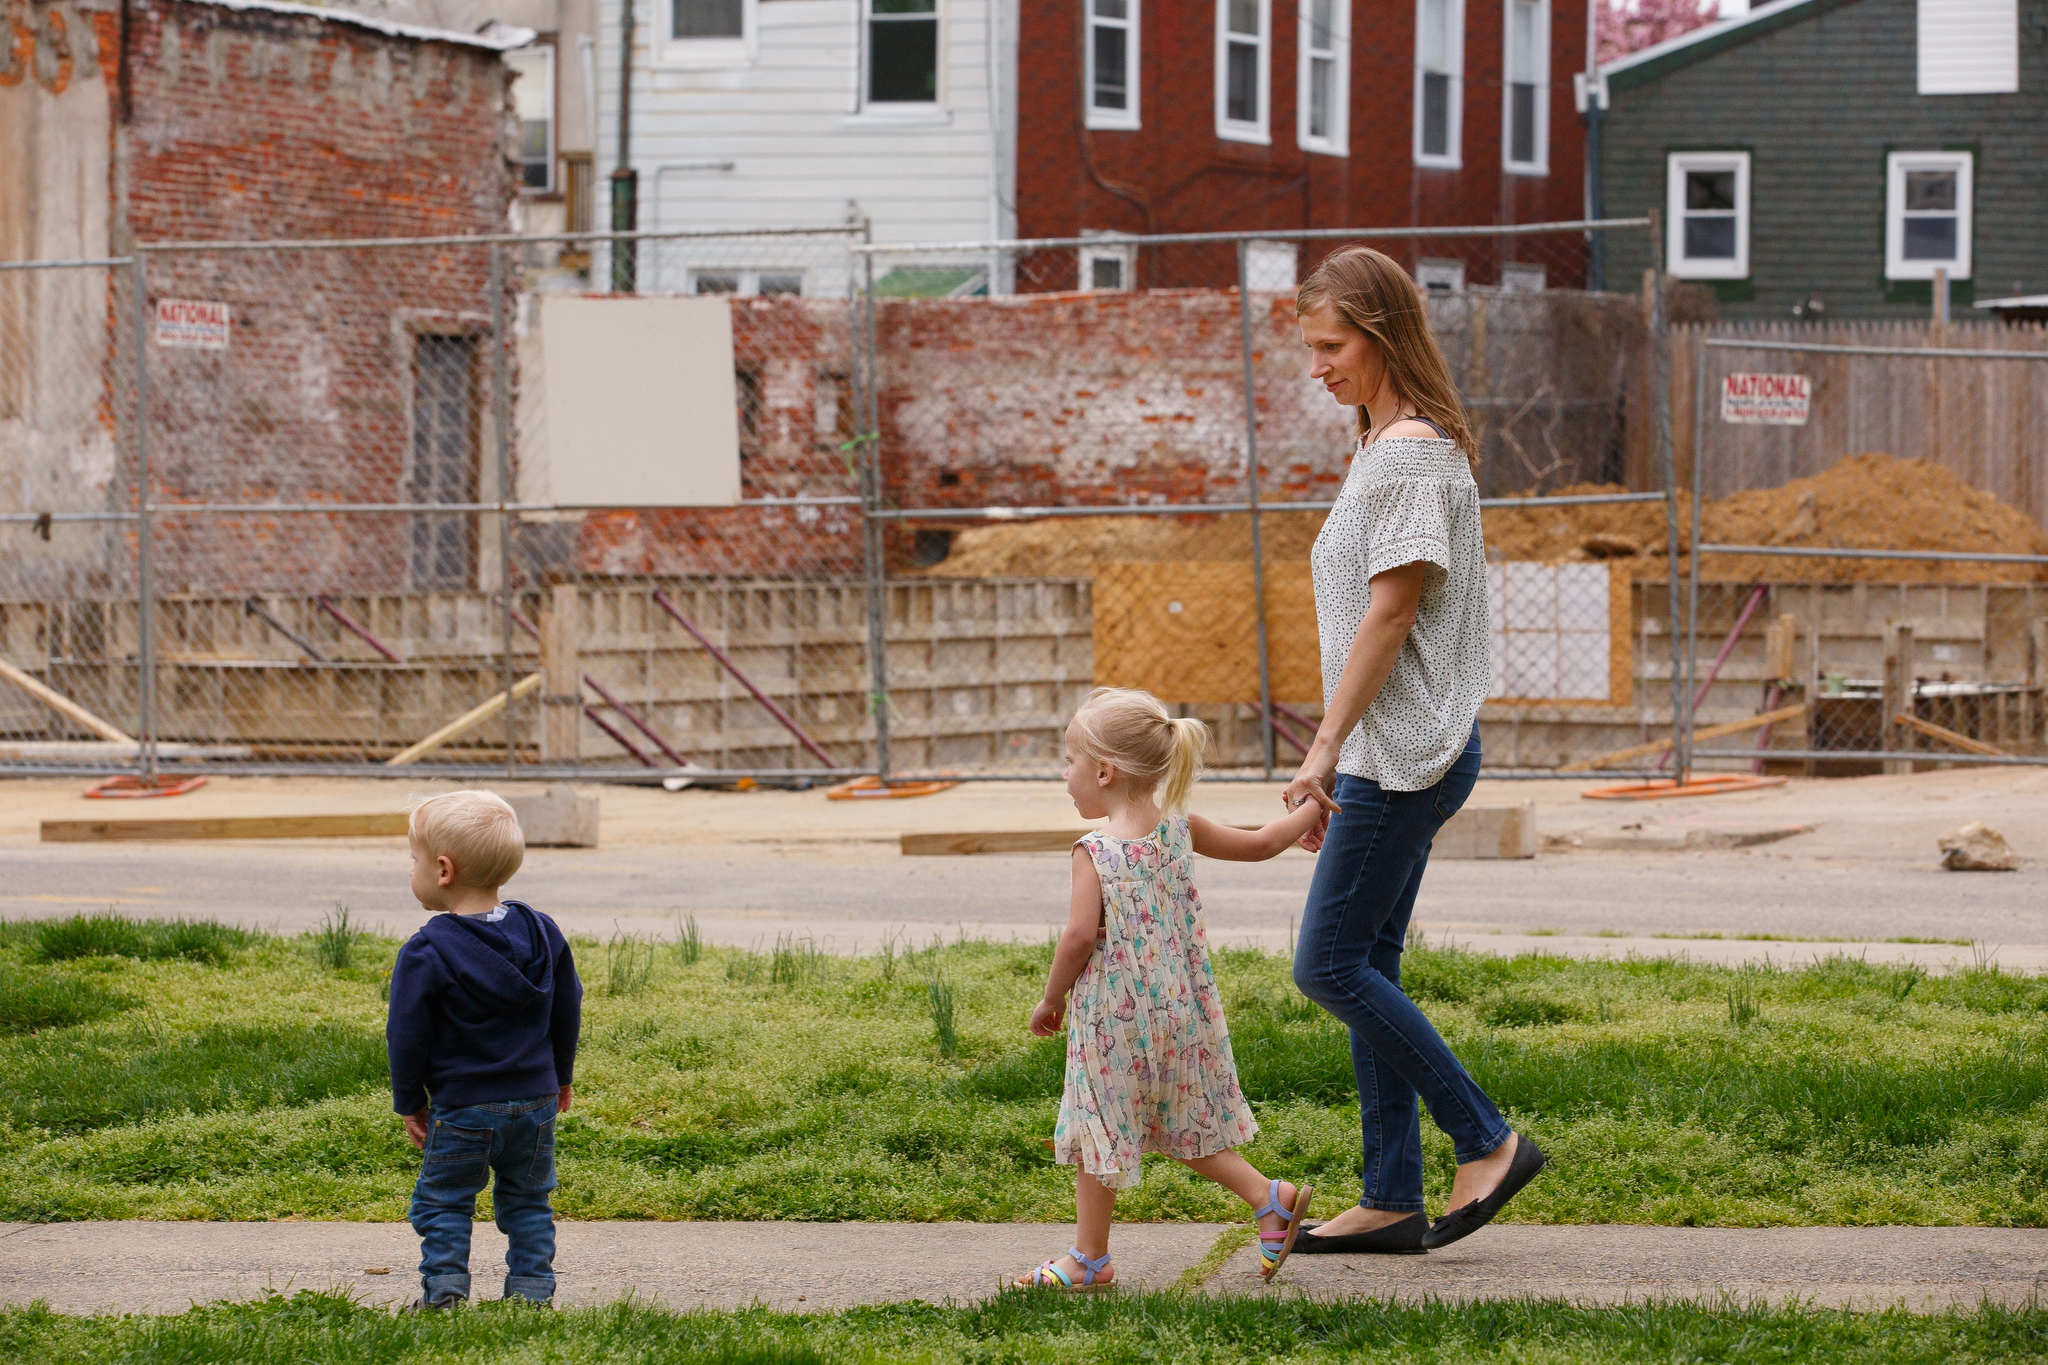 Jana Curtis walks with her children past a construction site near their neighborhood park in Kensington. After her yard´s soil tested high for lead, Curtis learned that her daughter, Nolyn, had lead poisoning. Nolyn struggles with her speech and temper.